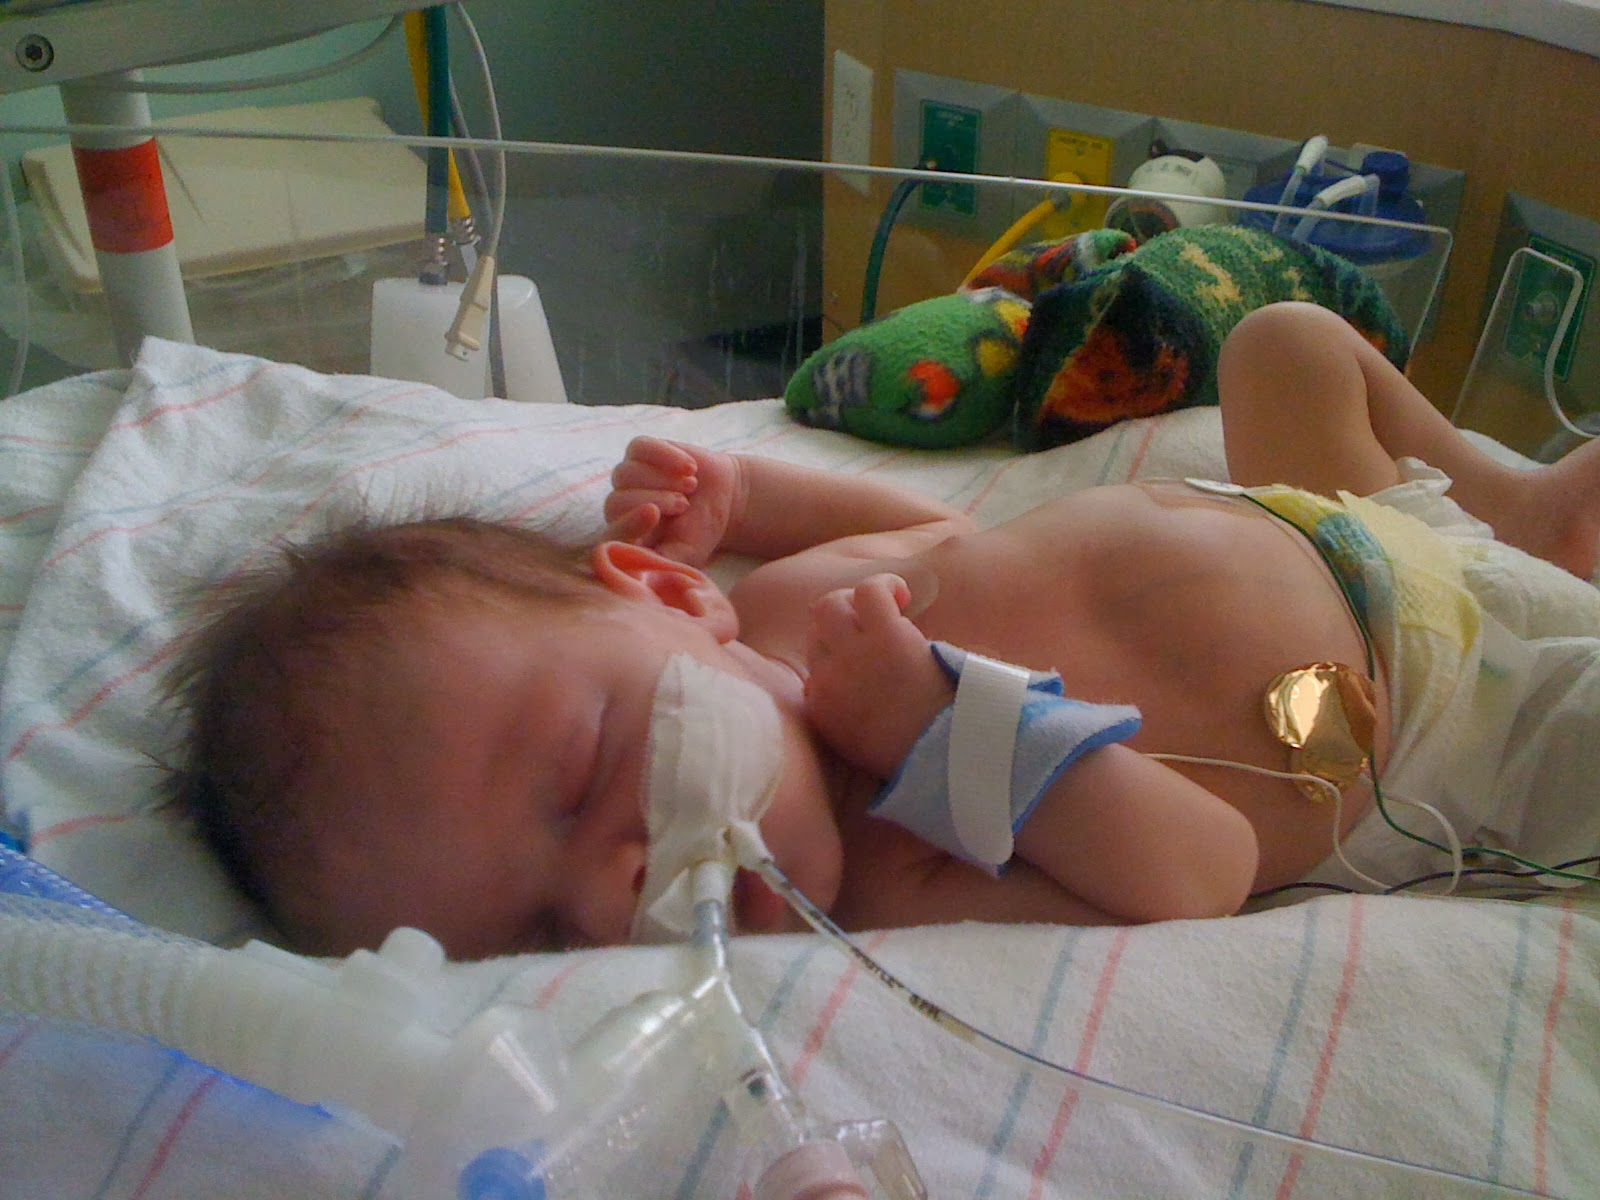 Neonatal Nurse Practitioner Working On A Baby